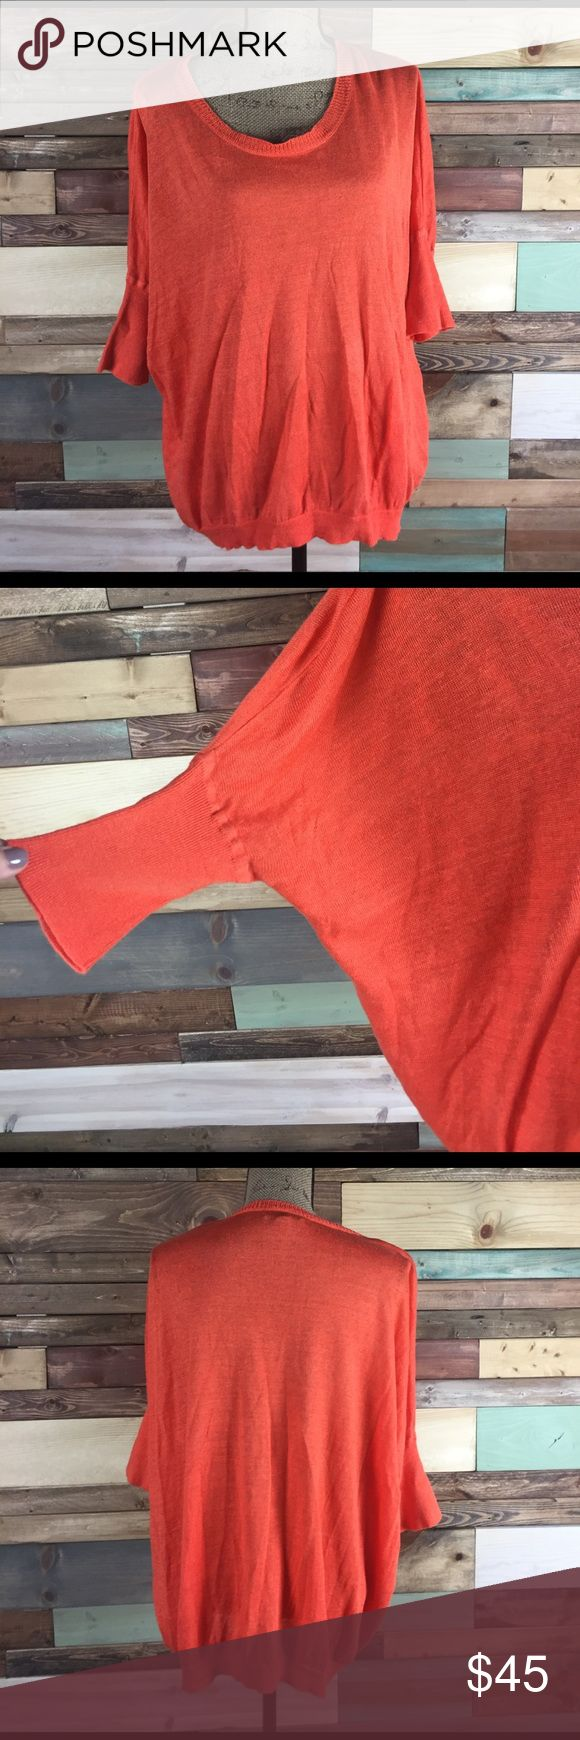 J. Crew Orange Slouchy Linen Tunic Sweater - M J. Crew Orange Slouchy Linen Tunic Sweater - M // 100% Linen / batwing style sleeves / longer Length / Medium J. Crew Tops Tunics